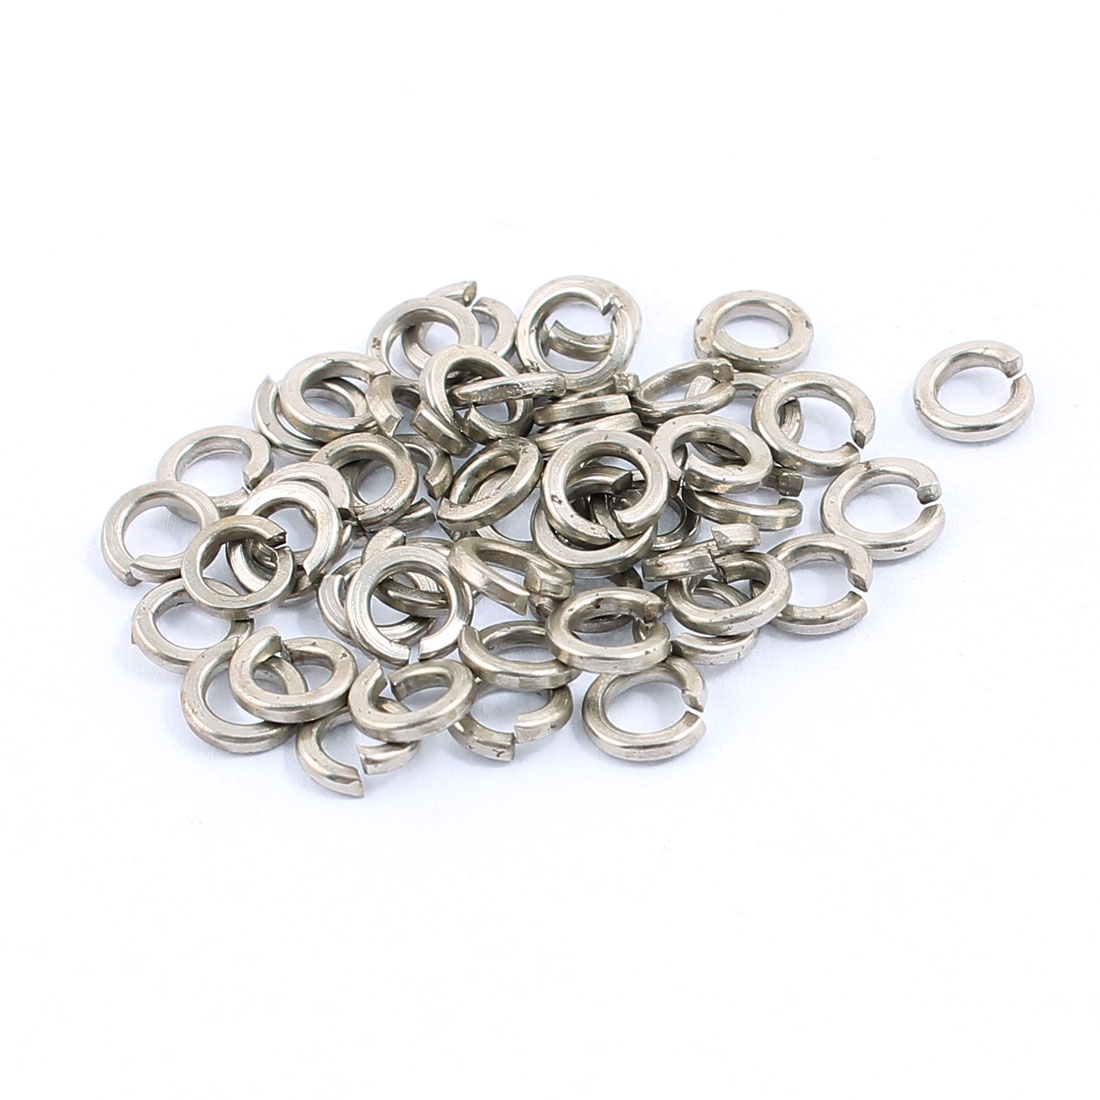 50pcs 3x5mm 304 Stainless Rectangular Section Split Lock Spring Washers Spacer for Screw